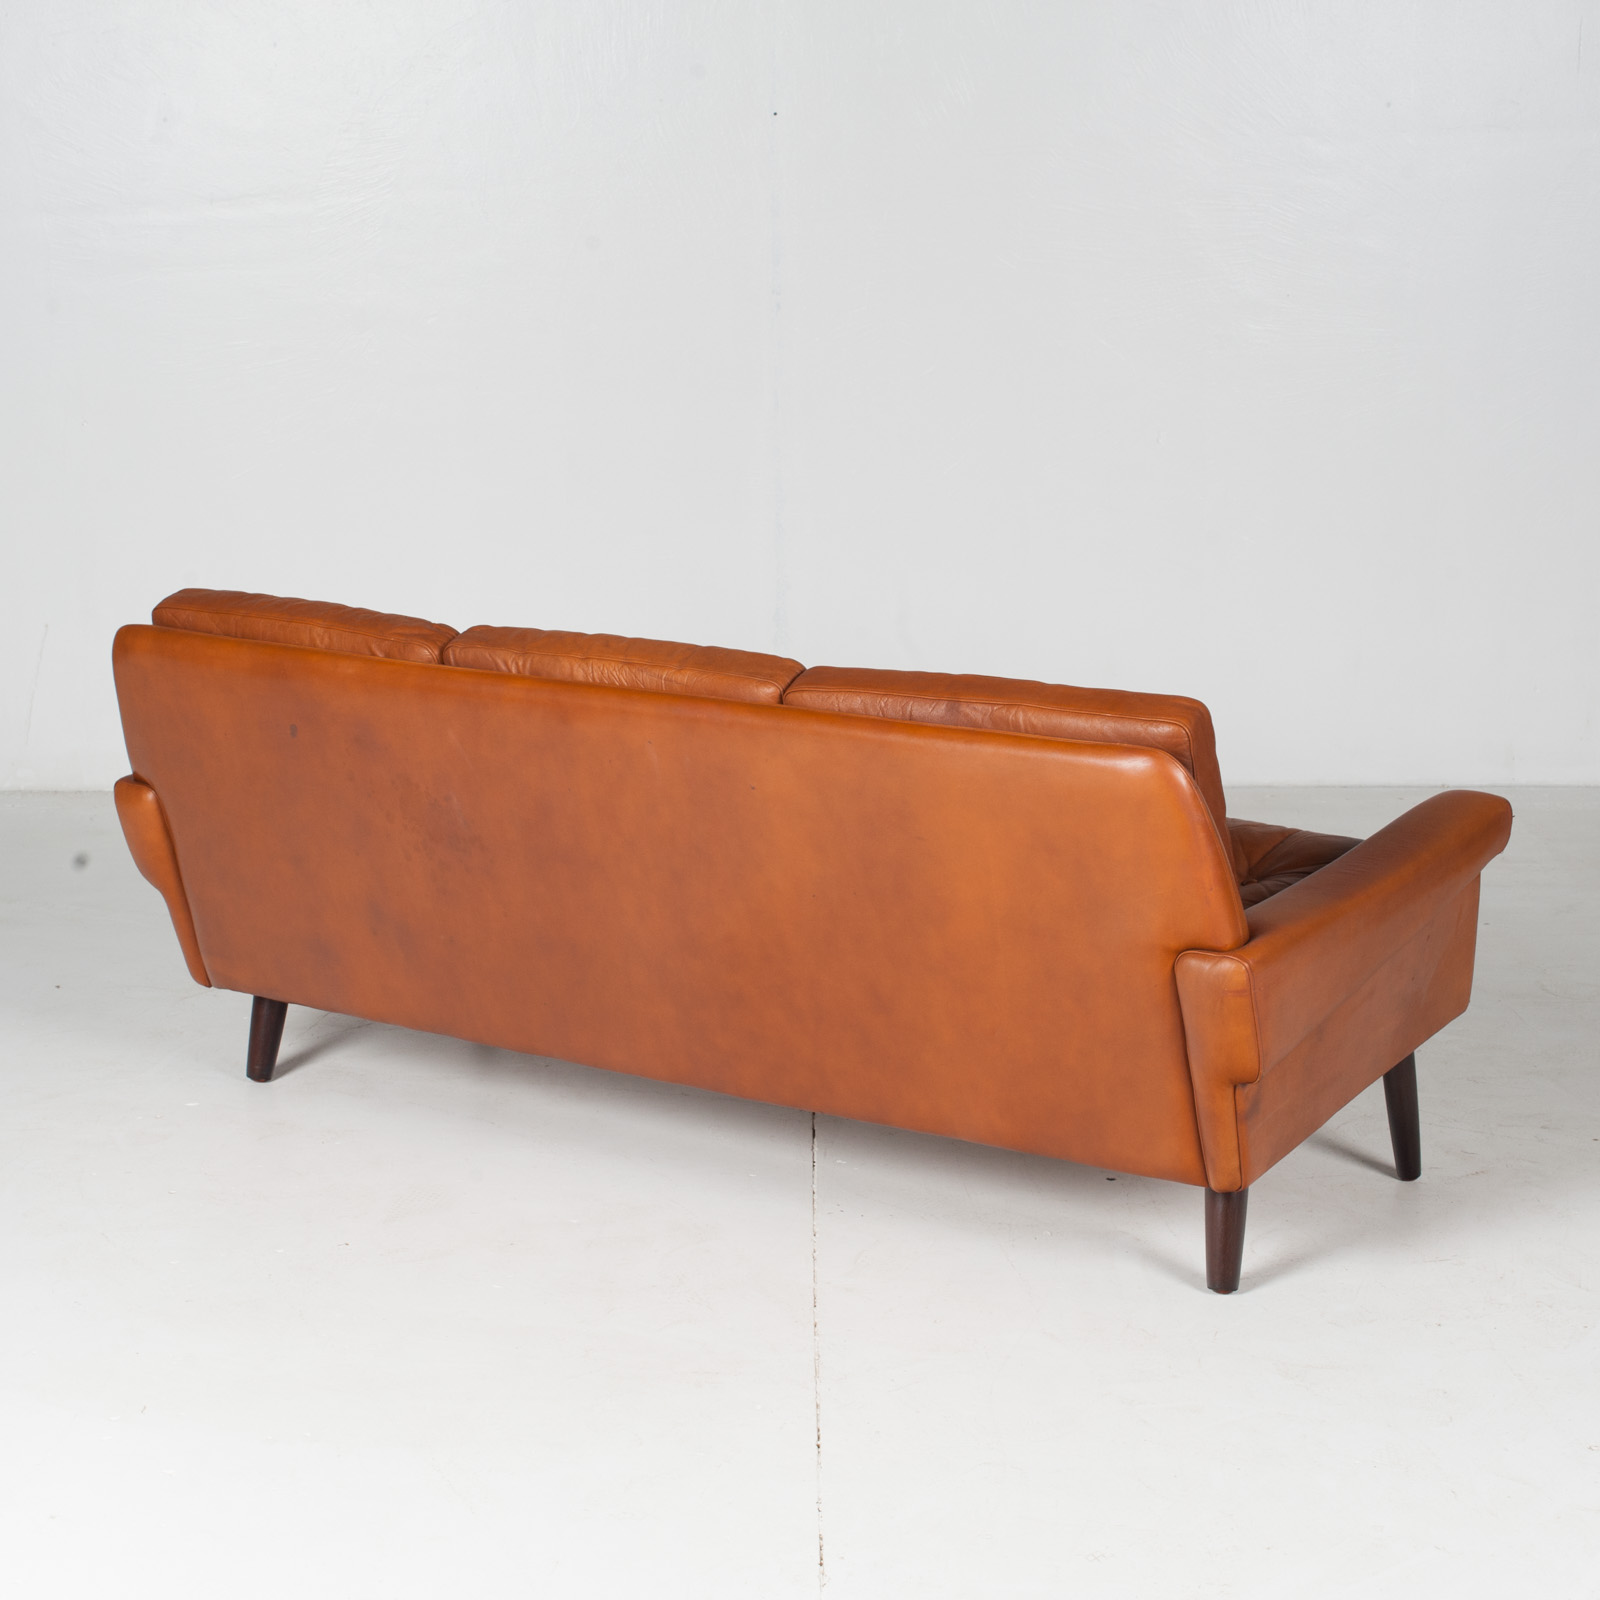 3 Seat Sofa In Tan Leather With Button Detailing For Skipper, 1960s, Denmark8